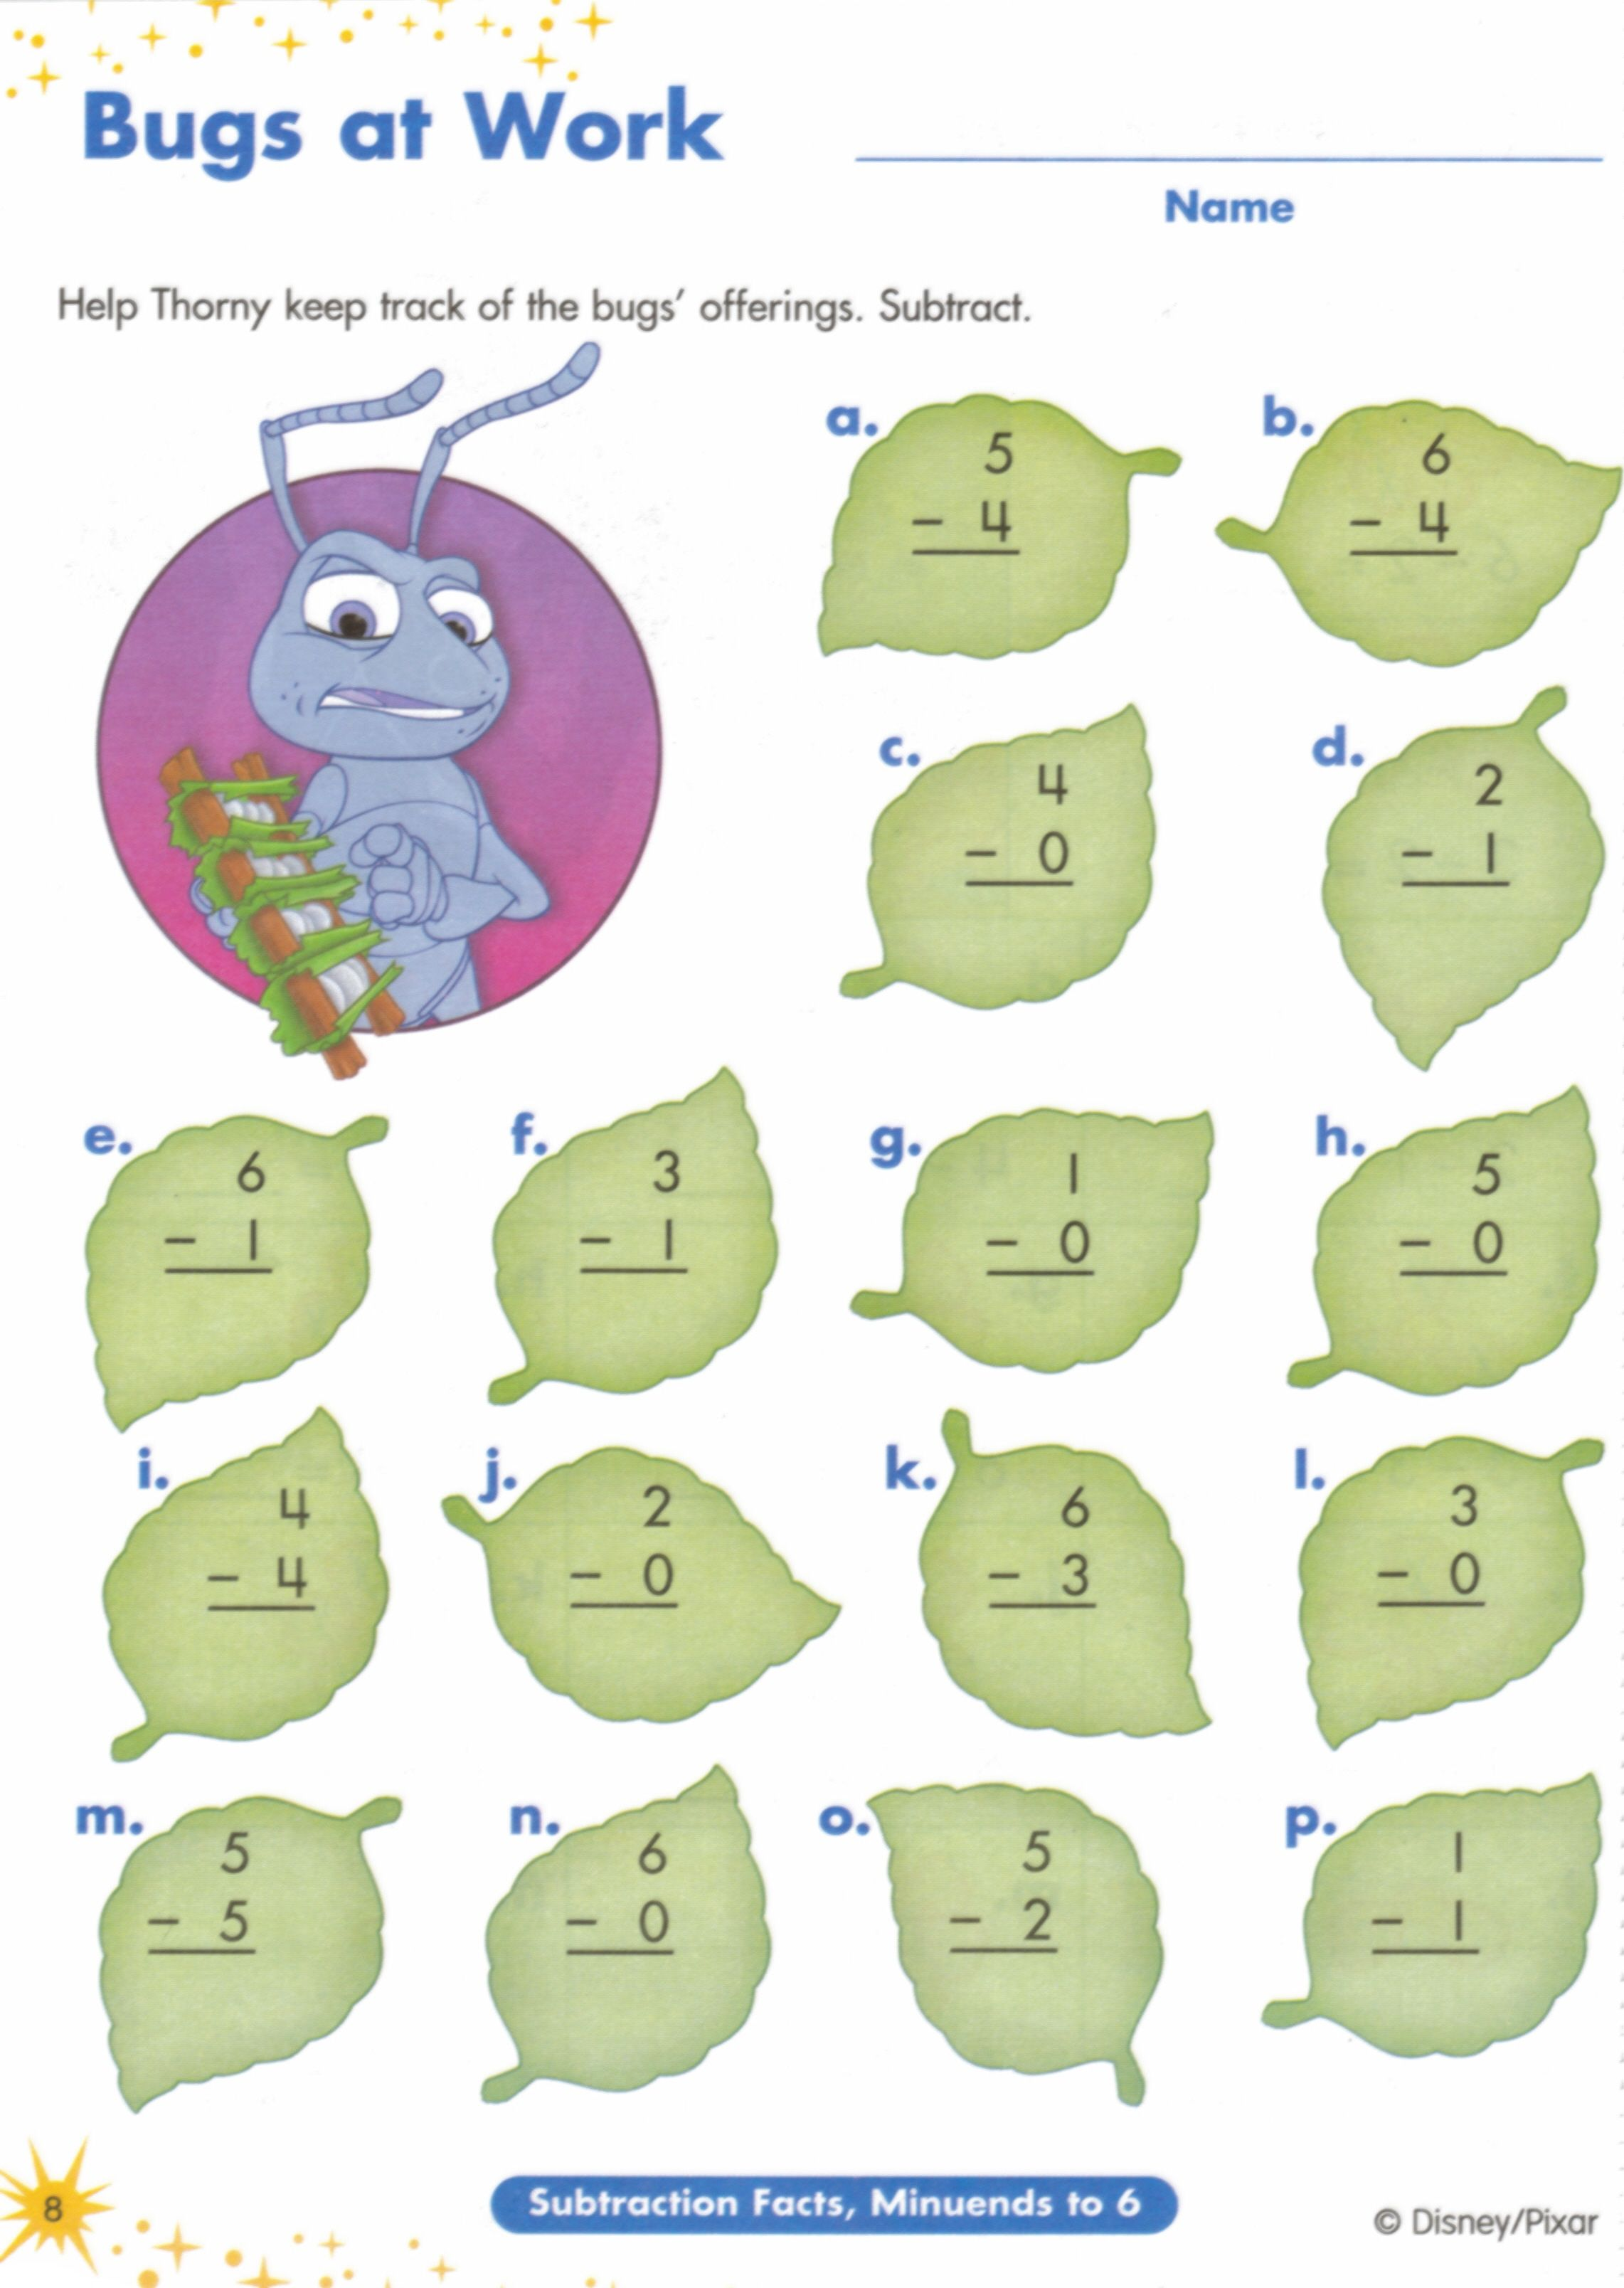 Proatmealus  Pleasant  Images About Worksheets On Pinterest  Fun Facts For Kids  With Heavenly  Images About Worksheets On Pinterest  Fun Facts For Kids Earth Day Worksheets And Jungles With Breathtaking Solving Addition Equations Worksheet Also  Times Table Worksheet Printable In Addition Add Subtract Worksheet And Oo Phonics Worksheet As Well As Text Features Worksheets Th Grade Additionally Kwl Chart Worksheet From Pinterestcom With Proatmealus  Heavenly  Images About Worksheets On Pinterest  Fun Facts For Kids  With Breathtaking  Images About Worksheets On Pinterest  Fun Facts For Kids Earth Day Worksheets And Jungles And Pleasant Solving Addition Equations Worksheet Also  Times Table Worksheet Printable In Addition Add Subtract Worksheet From Pinterestcom